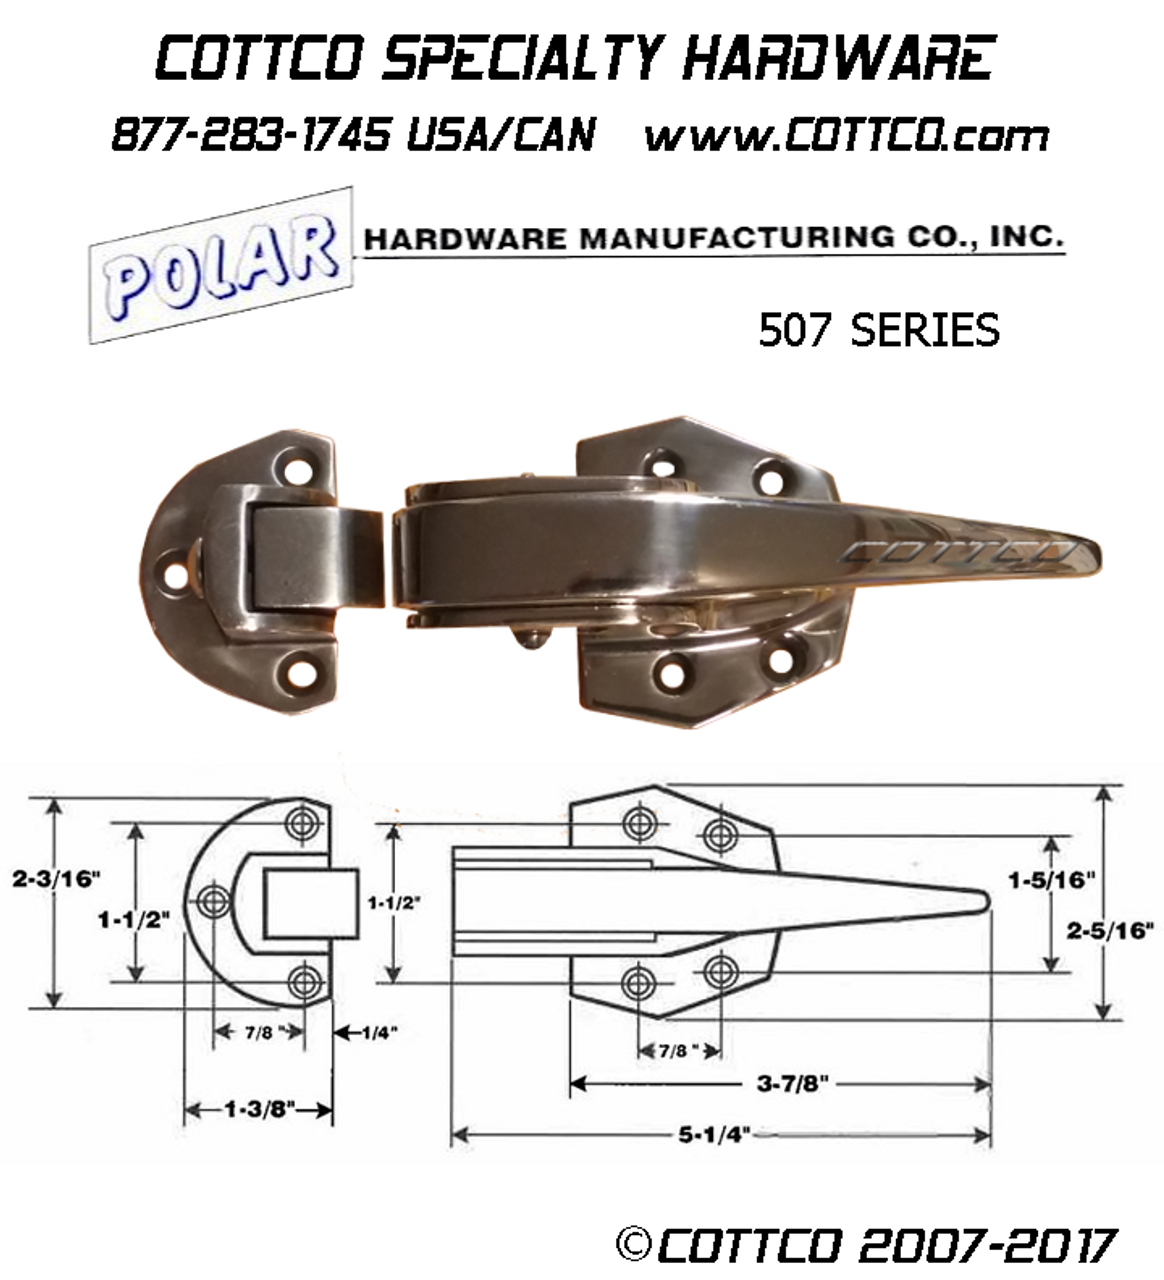 Polar Hardware Polarmatic 507 Trip Lock